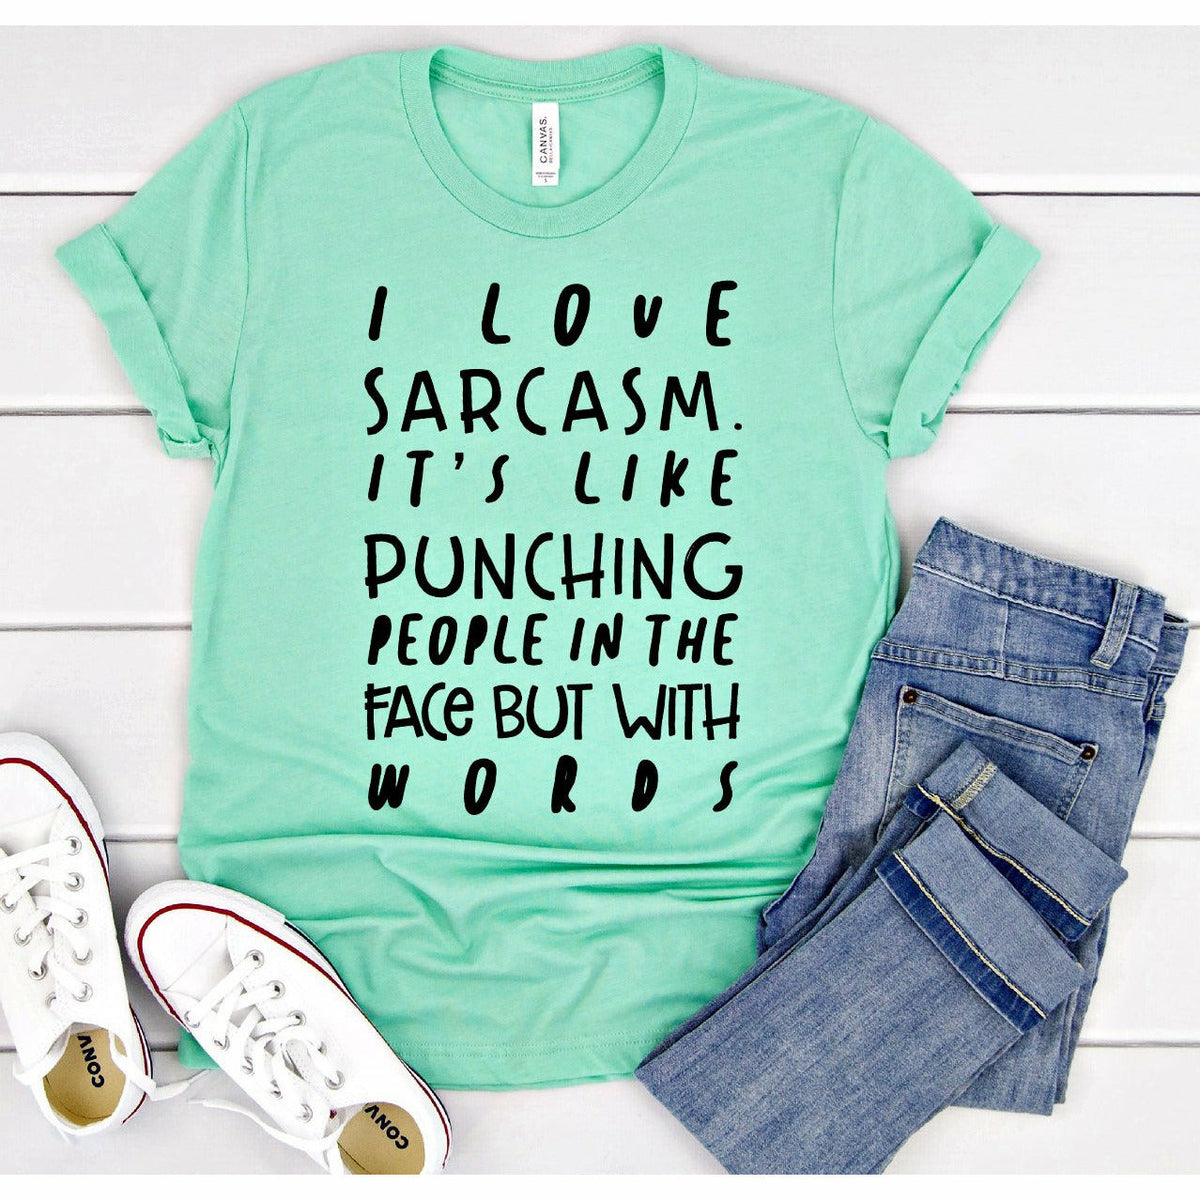 Punch with Sarcasm tee